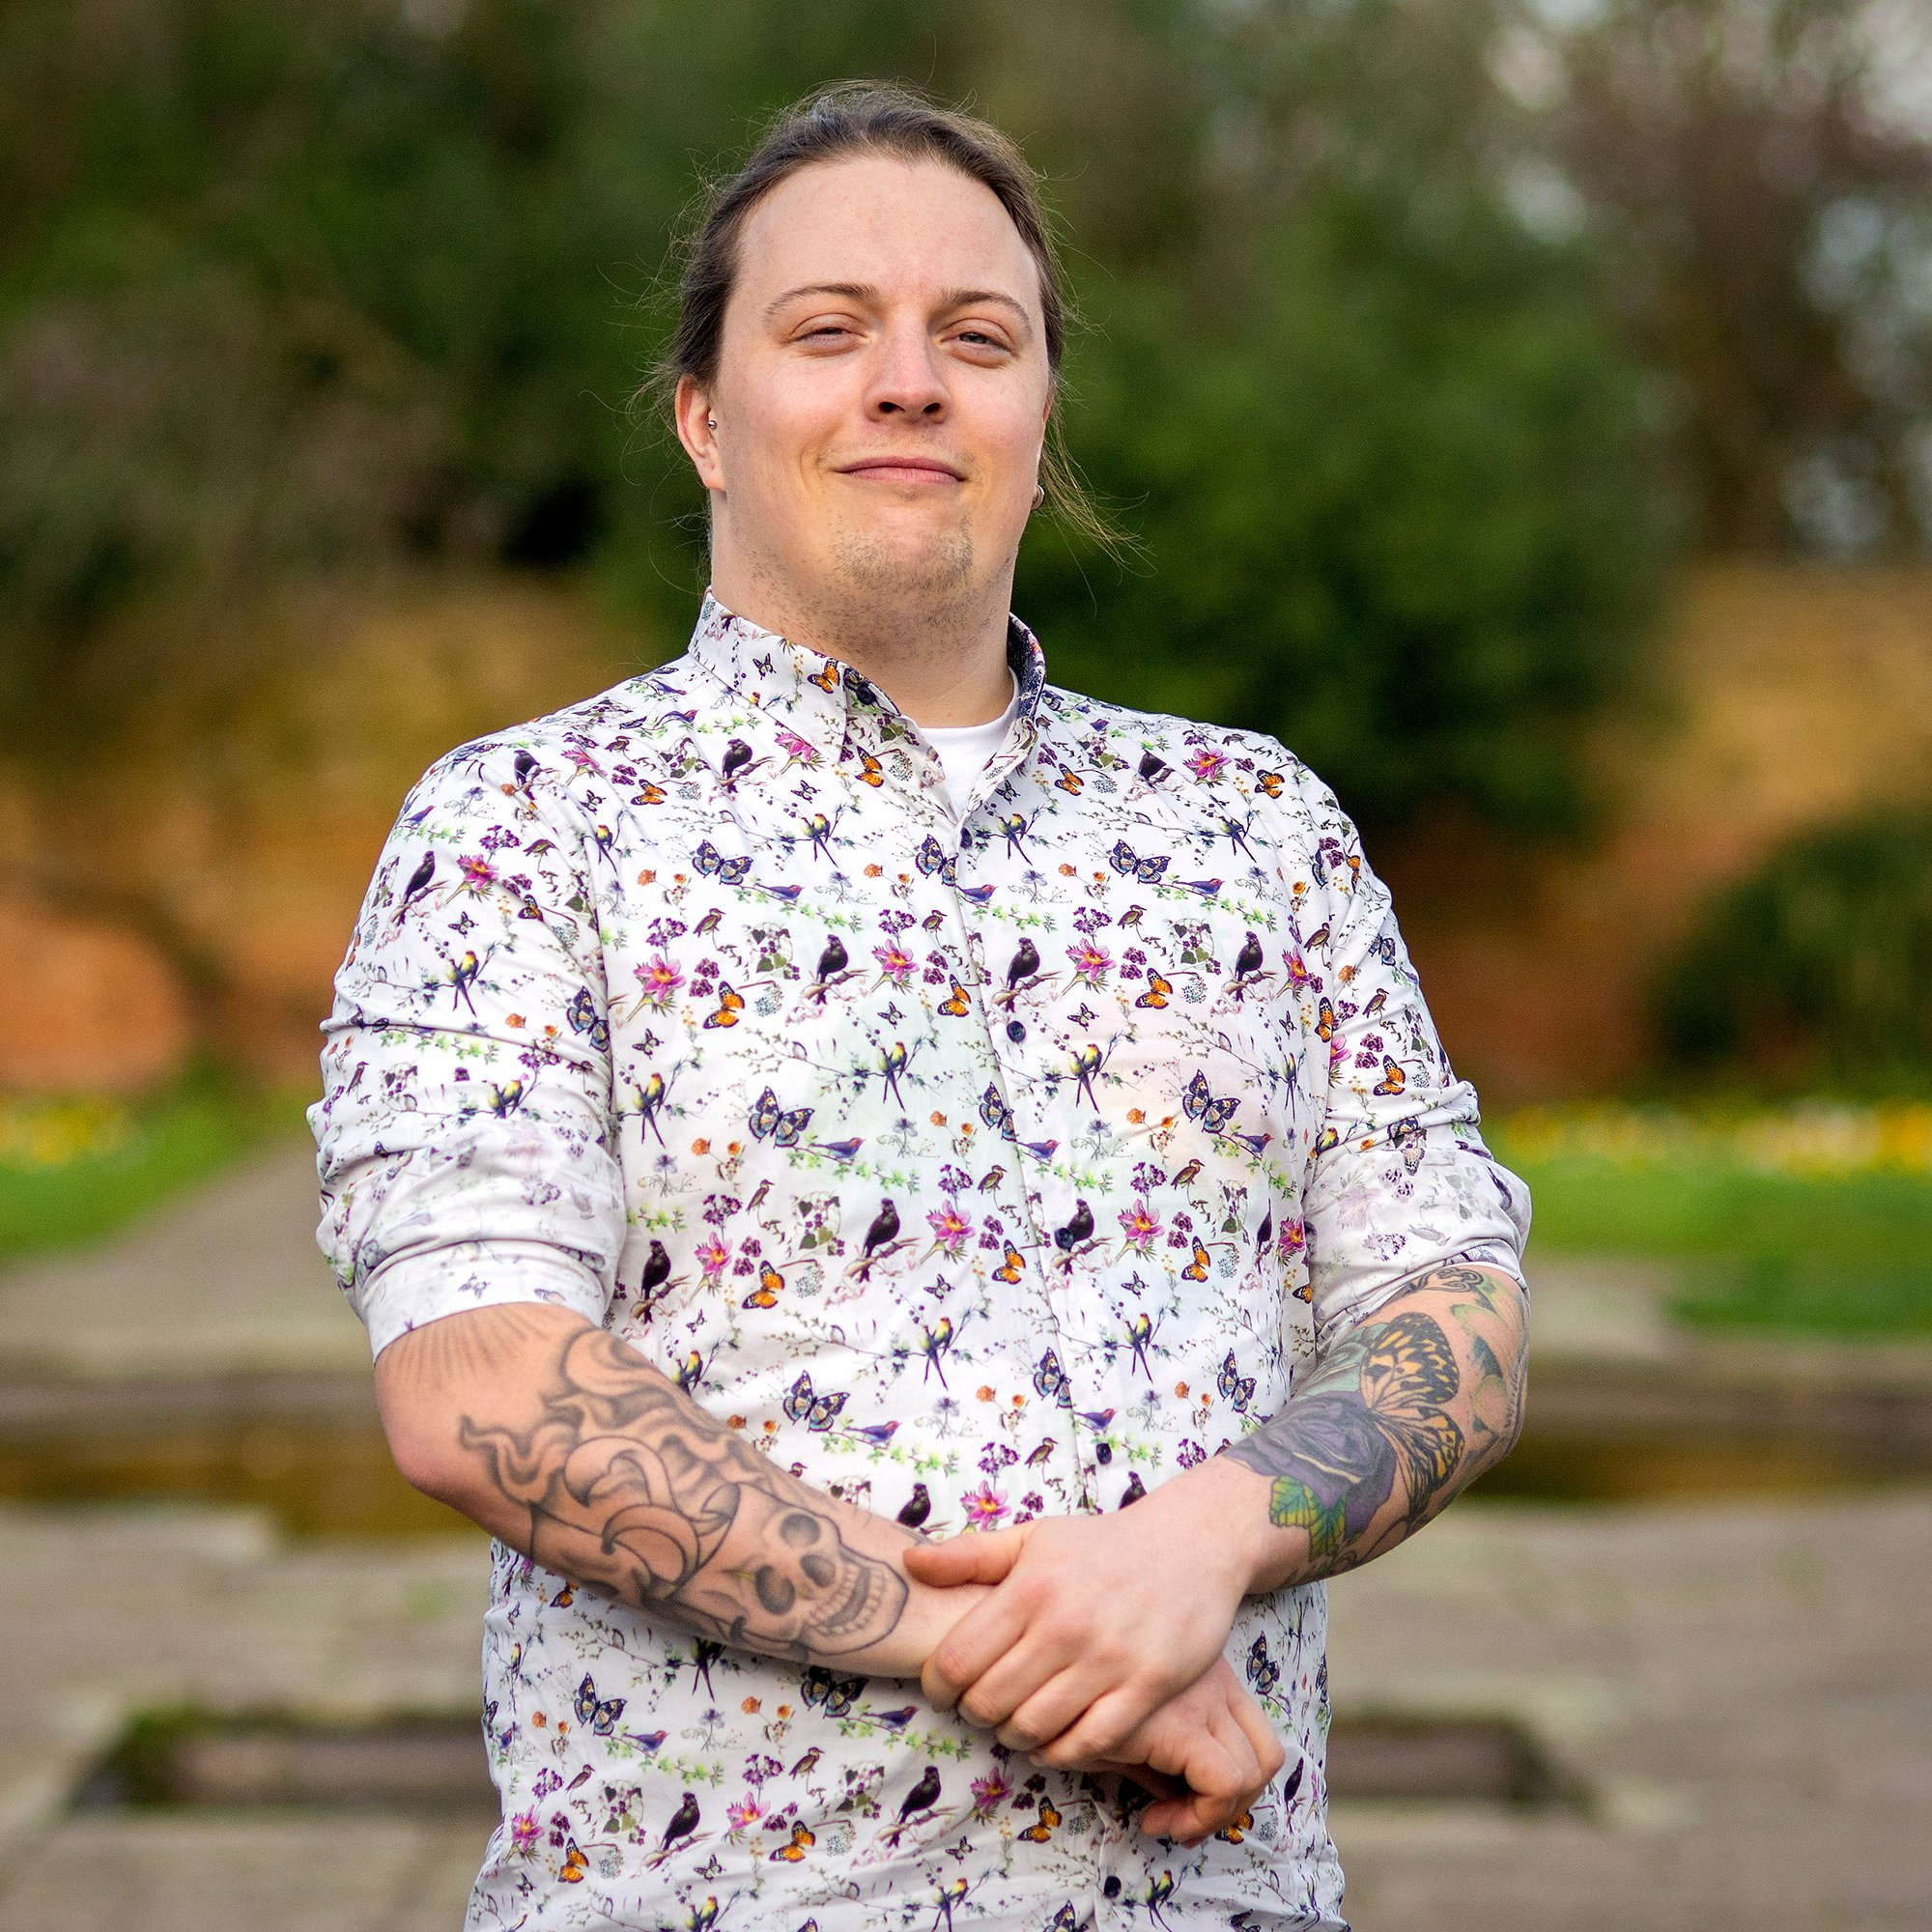 Reece Learmouth is the Green Party candidate for Eastwood Park.